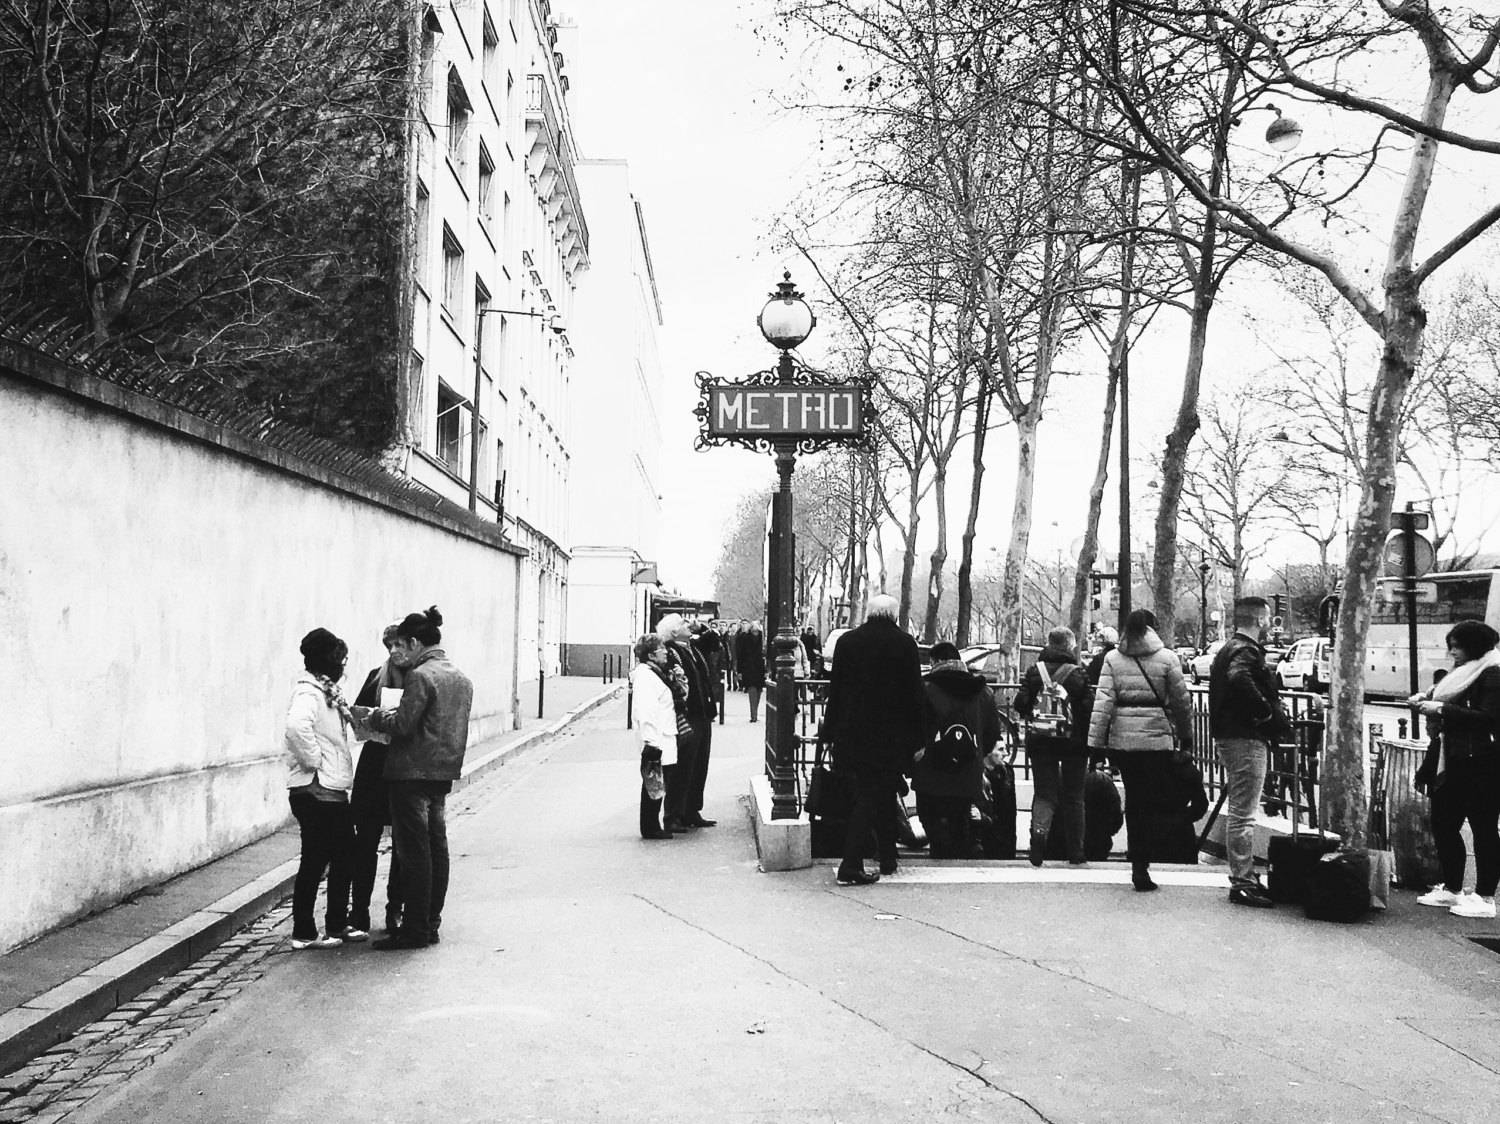 Paris Photography, Paris Metro, Black And White Print, Paris For Latest Black And White Paris Wall Art (View 13 of 25)